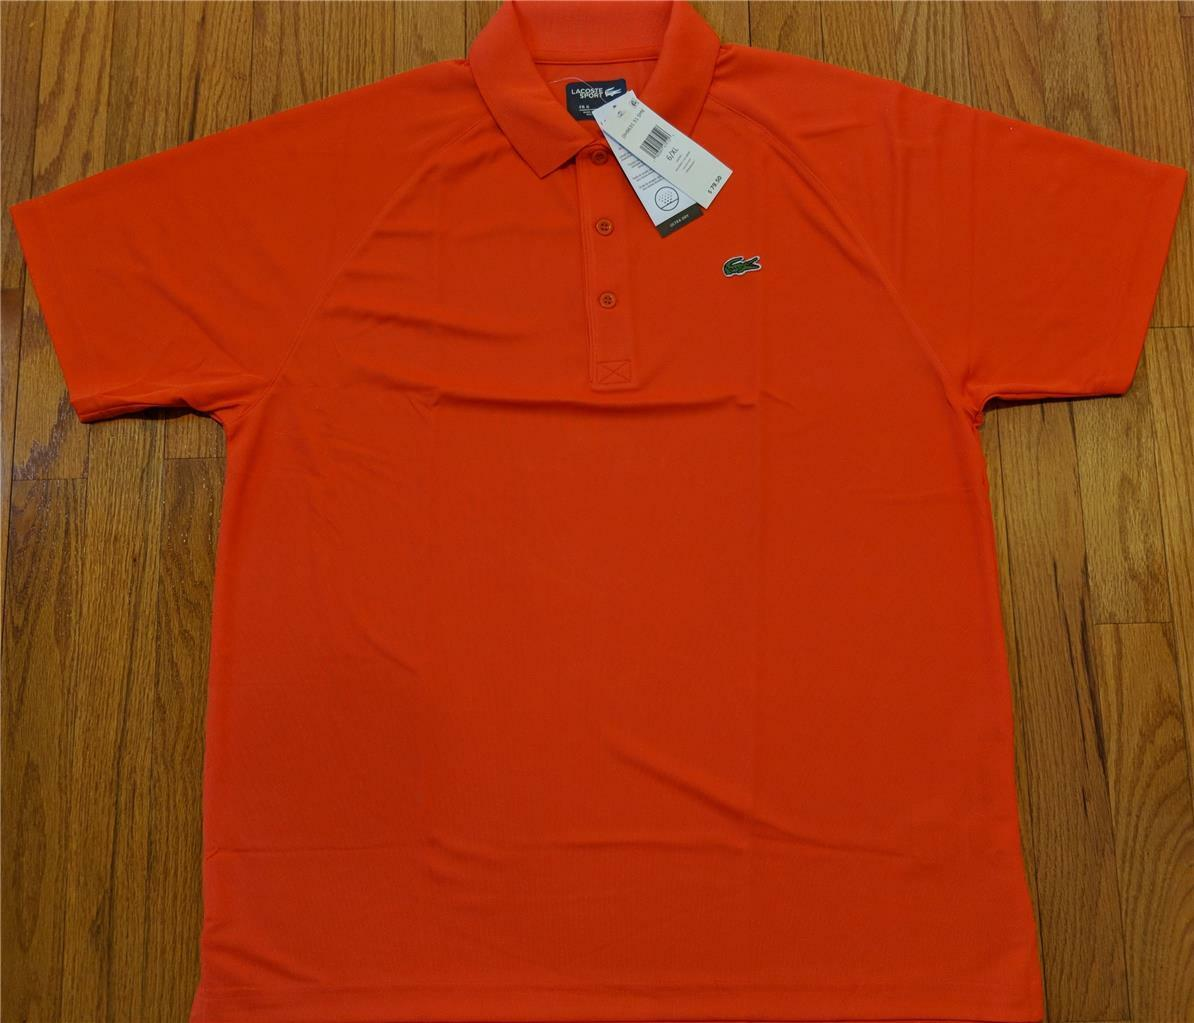 Mens Authentic Lacoste Sport Super Light Polo Shirt Mexico Red 6 (XL)